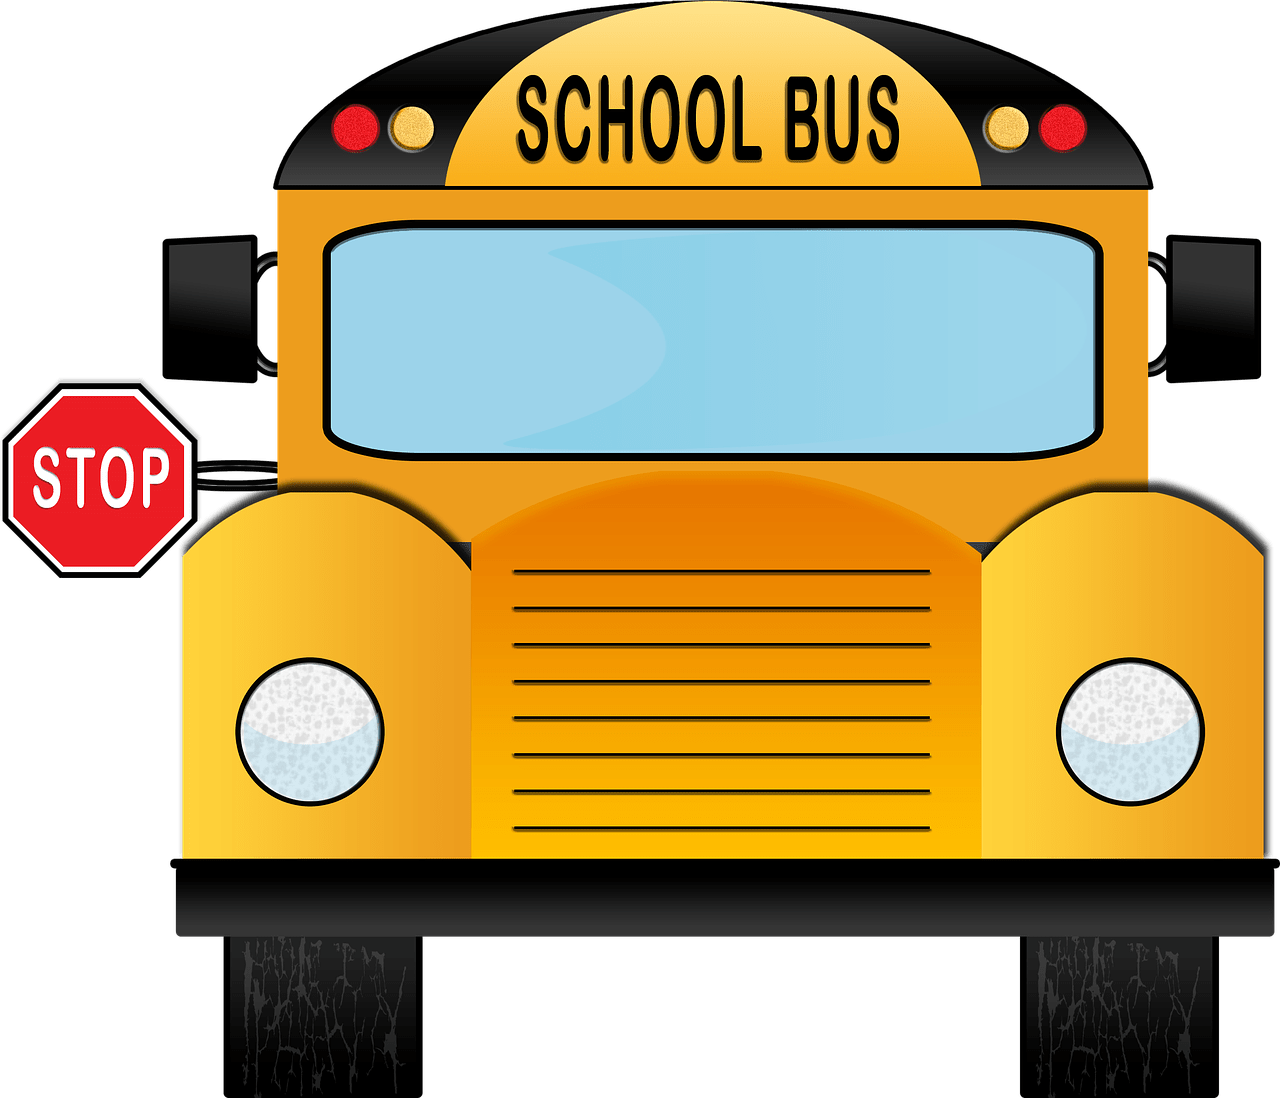 yellow school bus with stop sign displayed